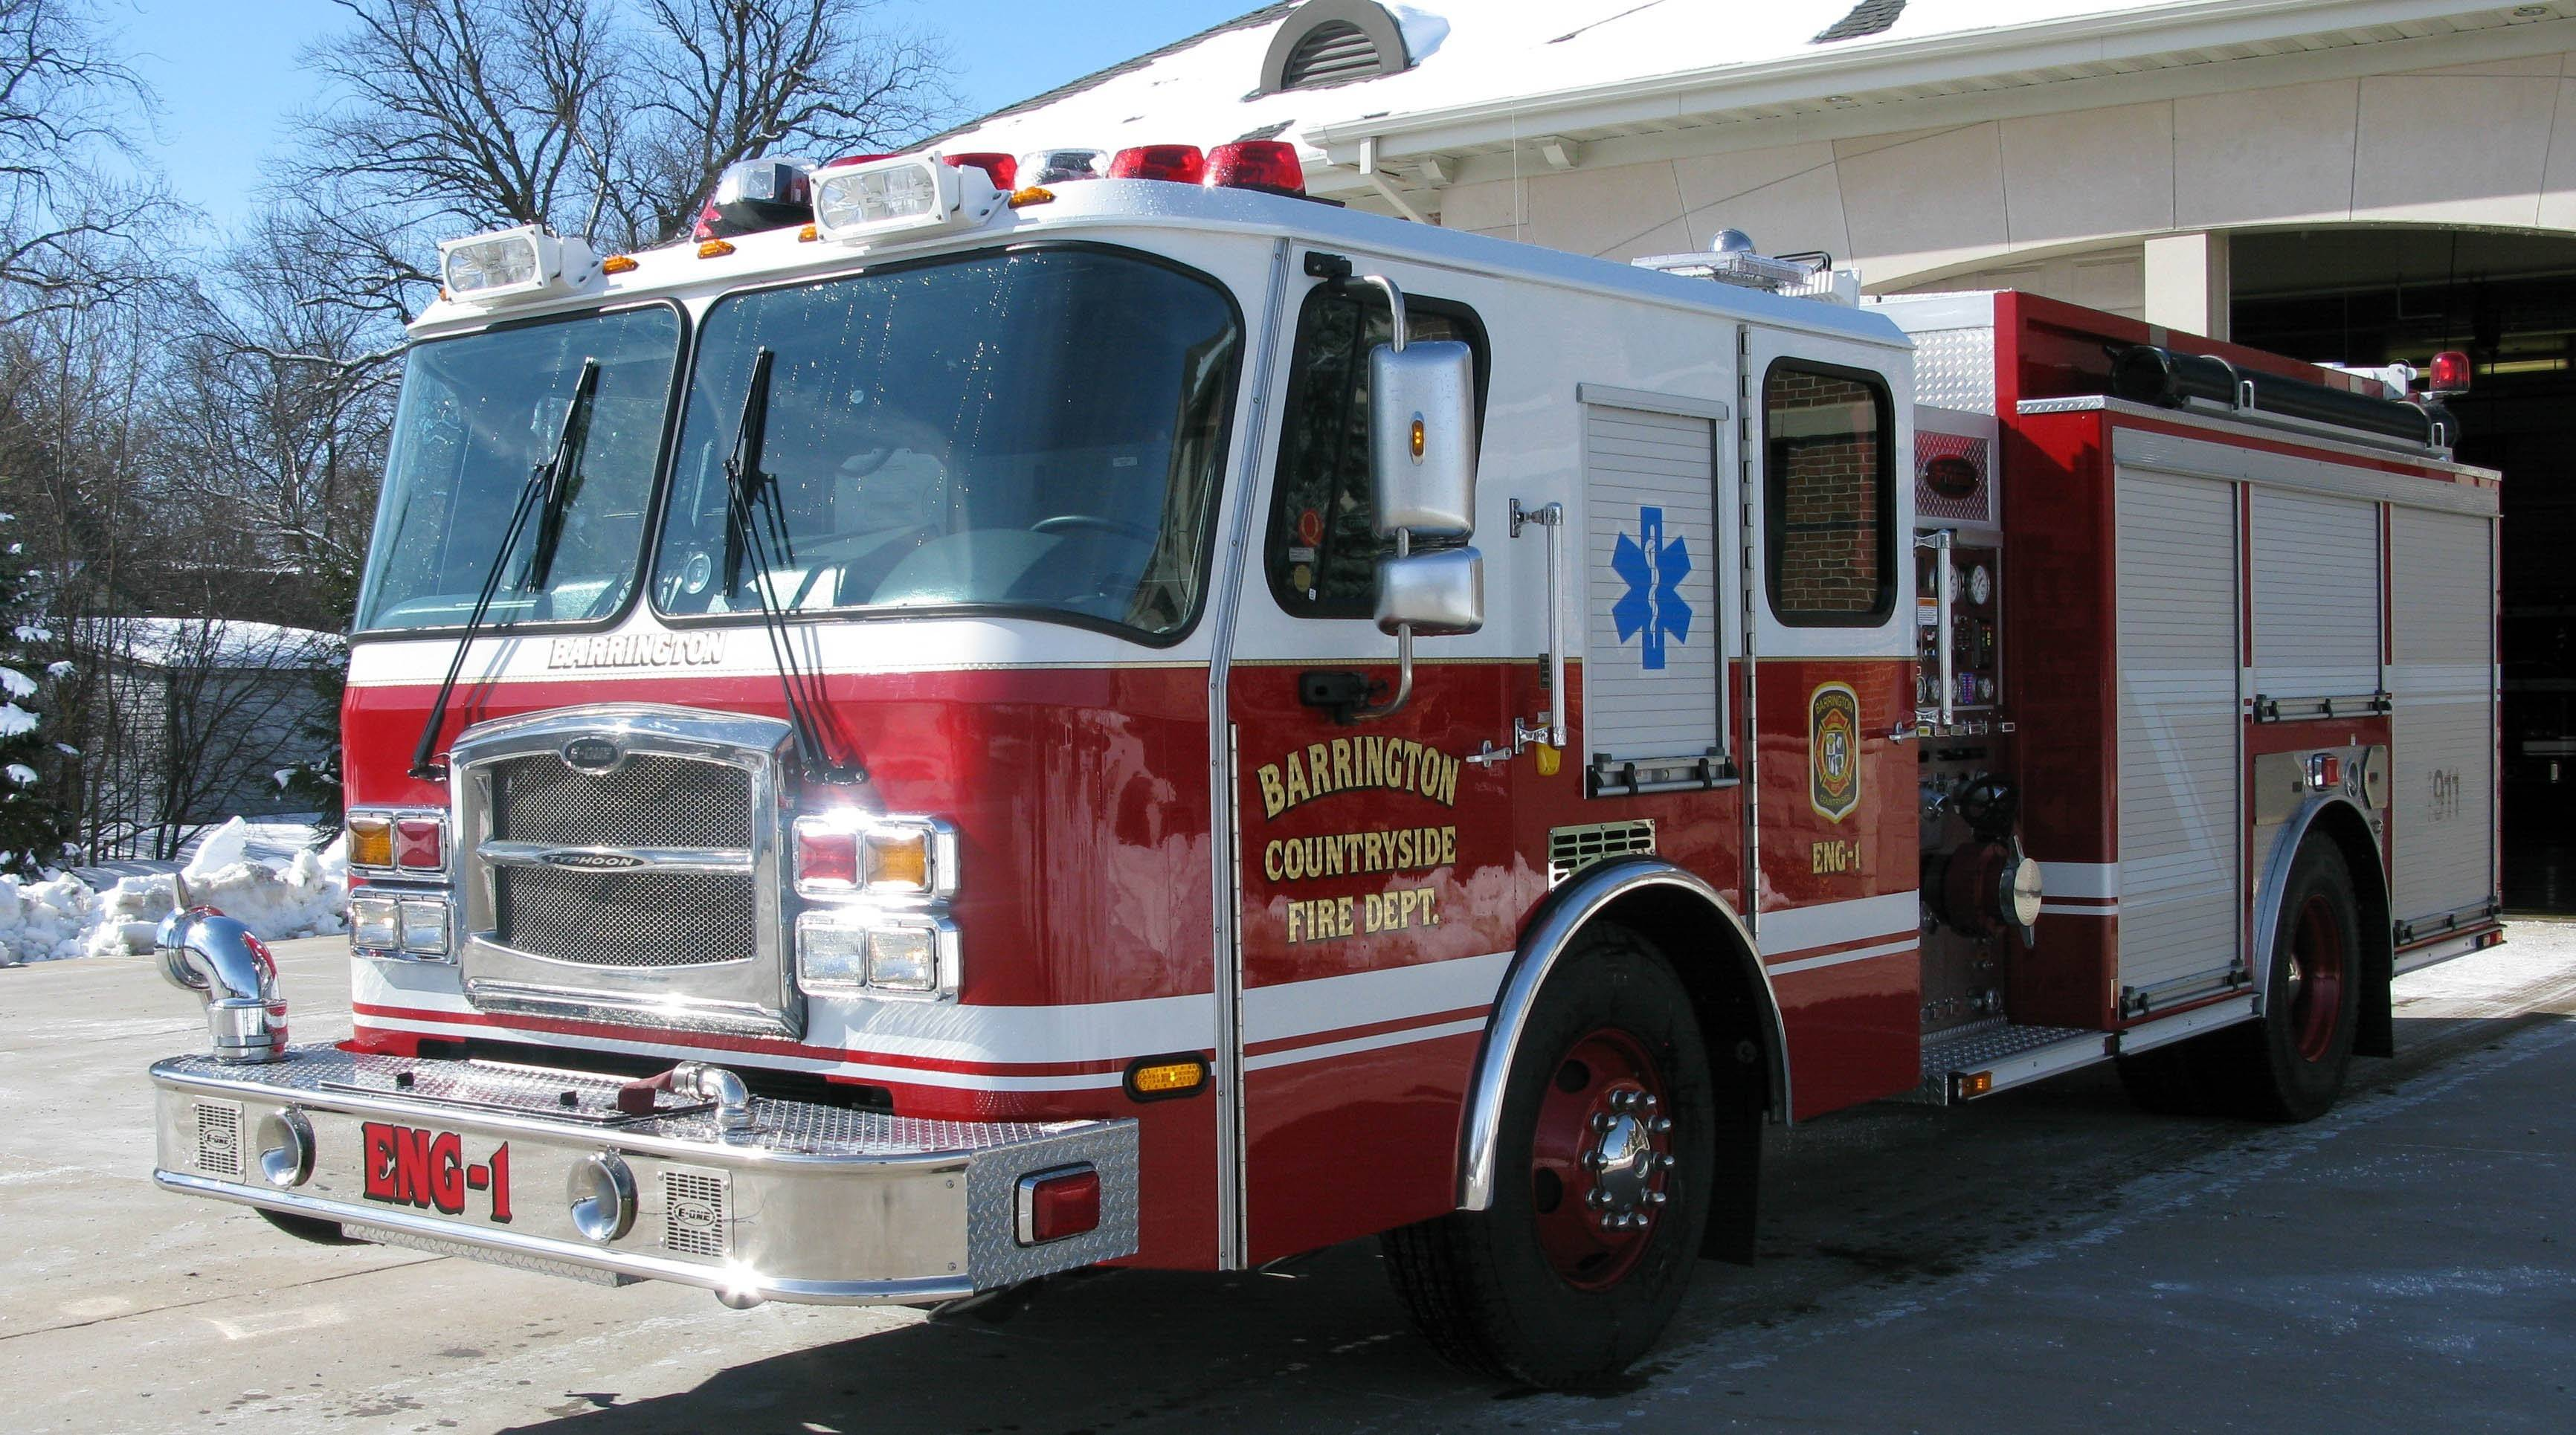 The Barrington Countryside Fire Protection District and Barrington Fire Department have reached a deal governing when, how and where the two agencies will respond to emergencies in the other's jurisdiction. The deal was ratified by both sides Monday night.